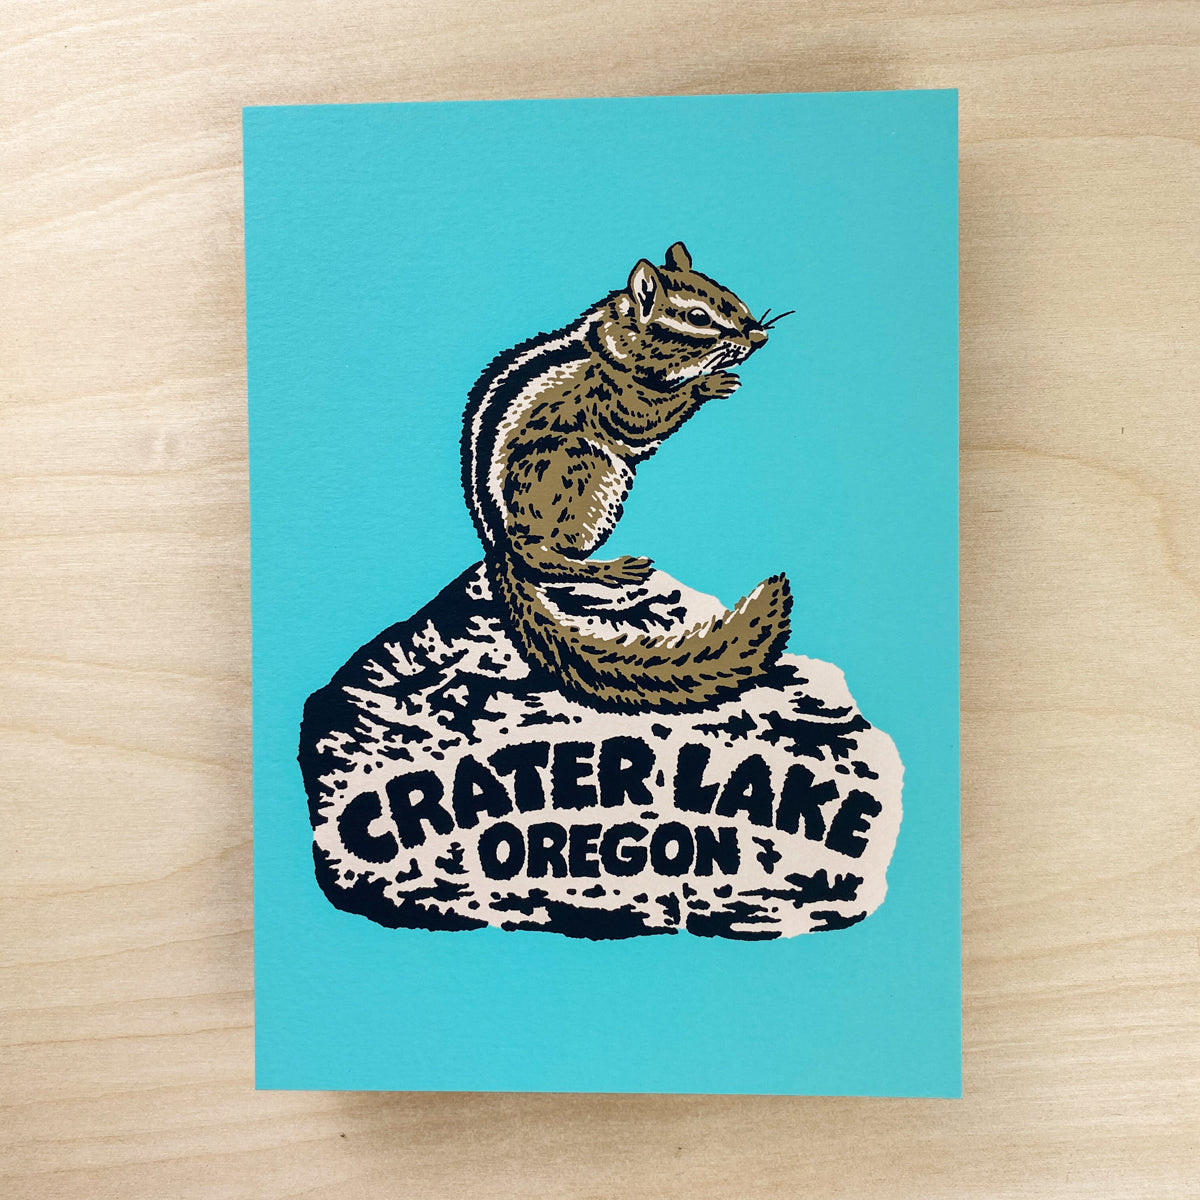 Crater Lake Chipmunk - Signed Print #187